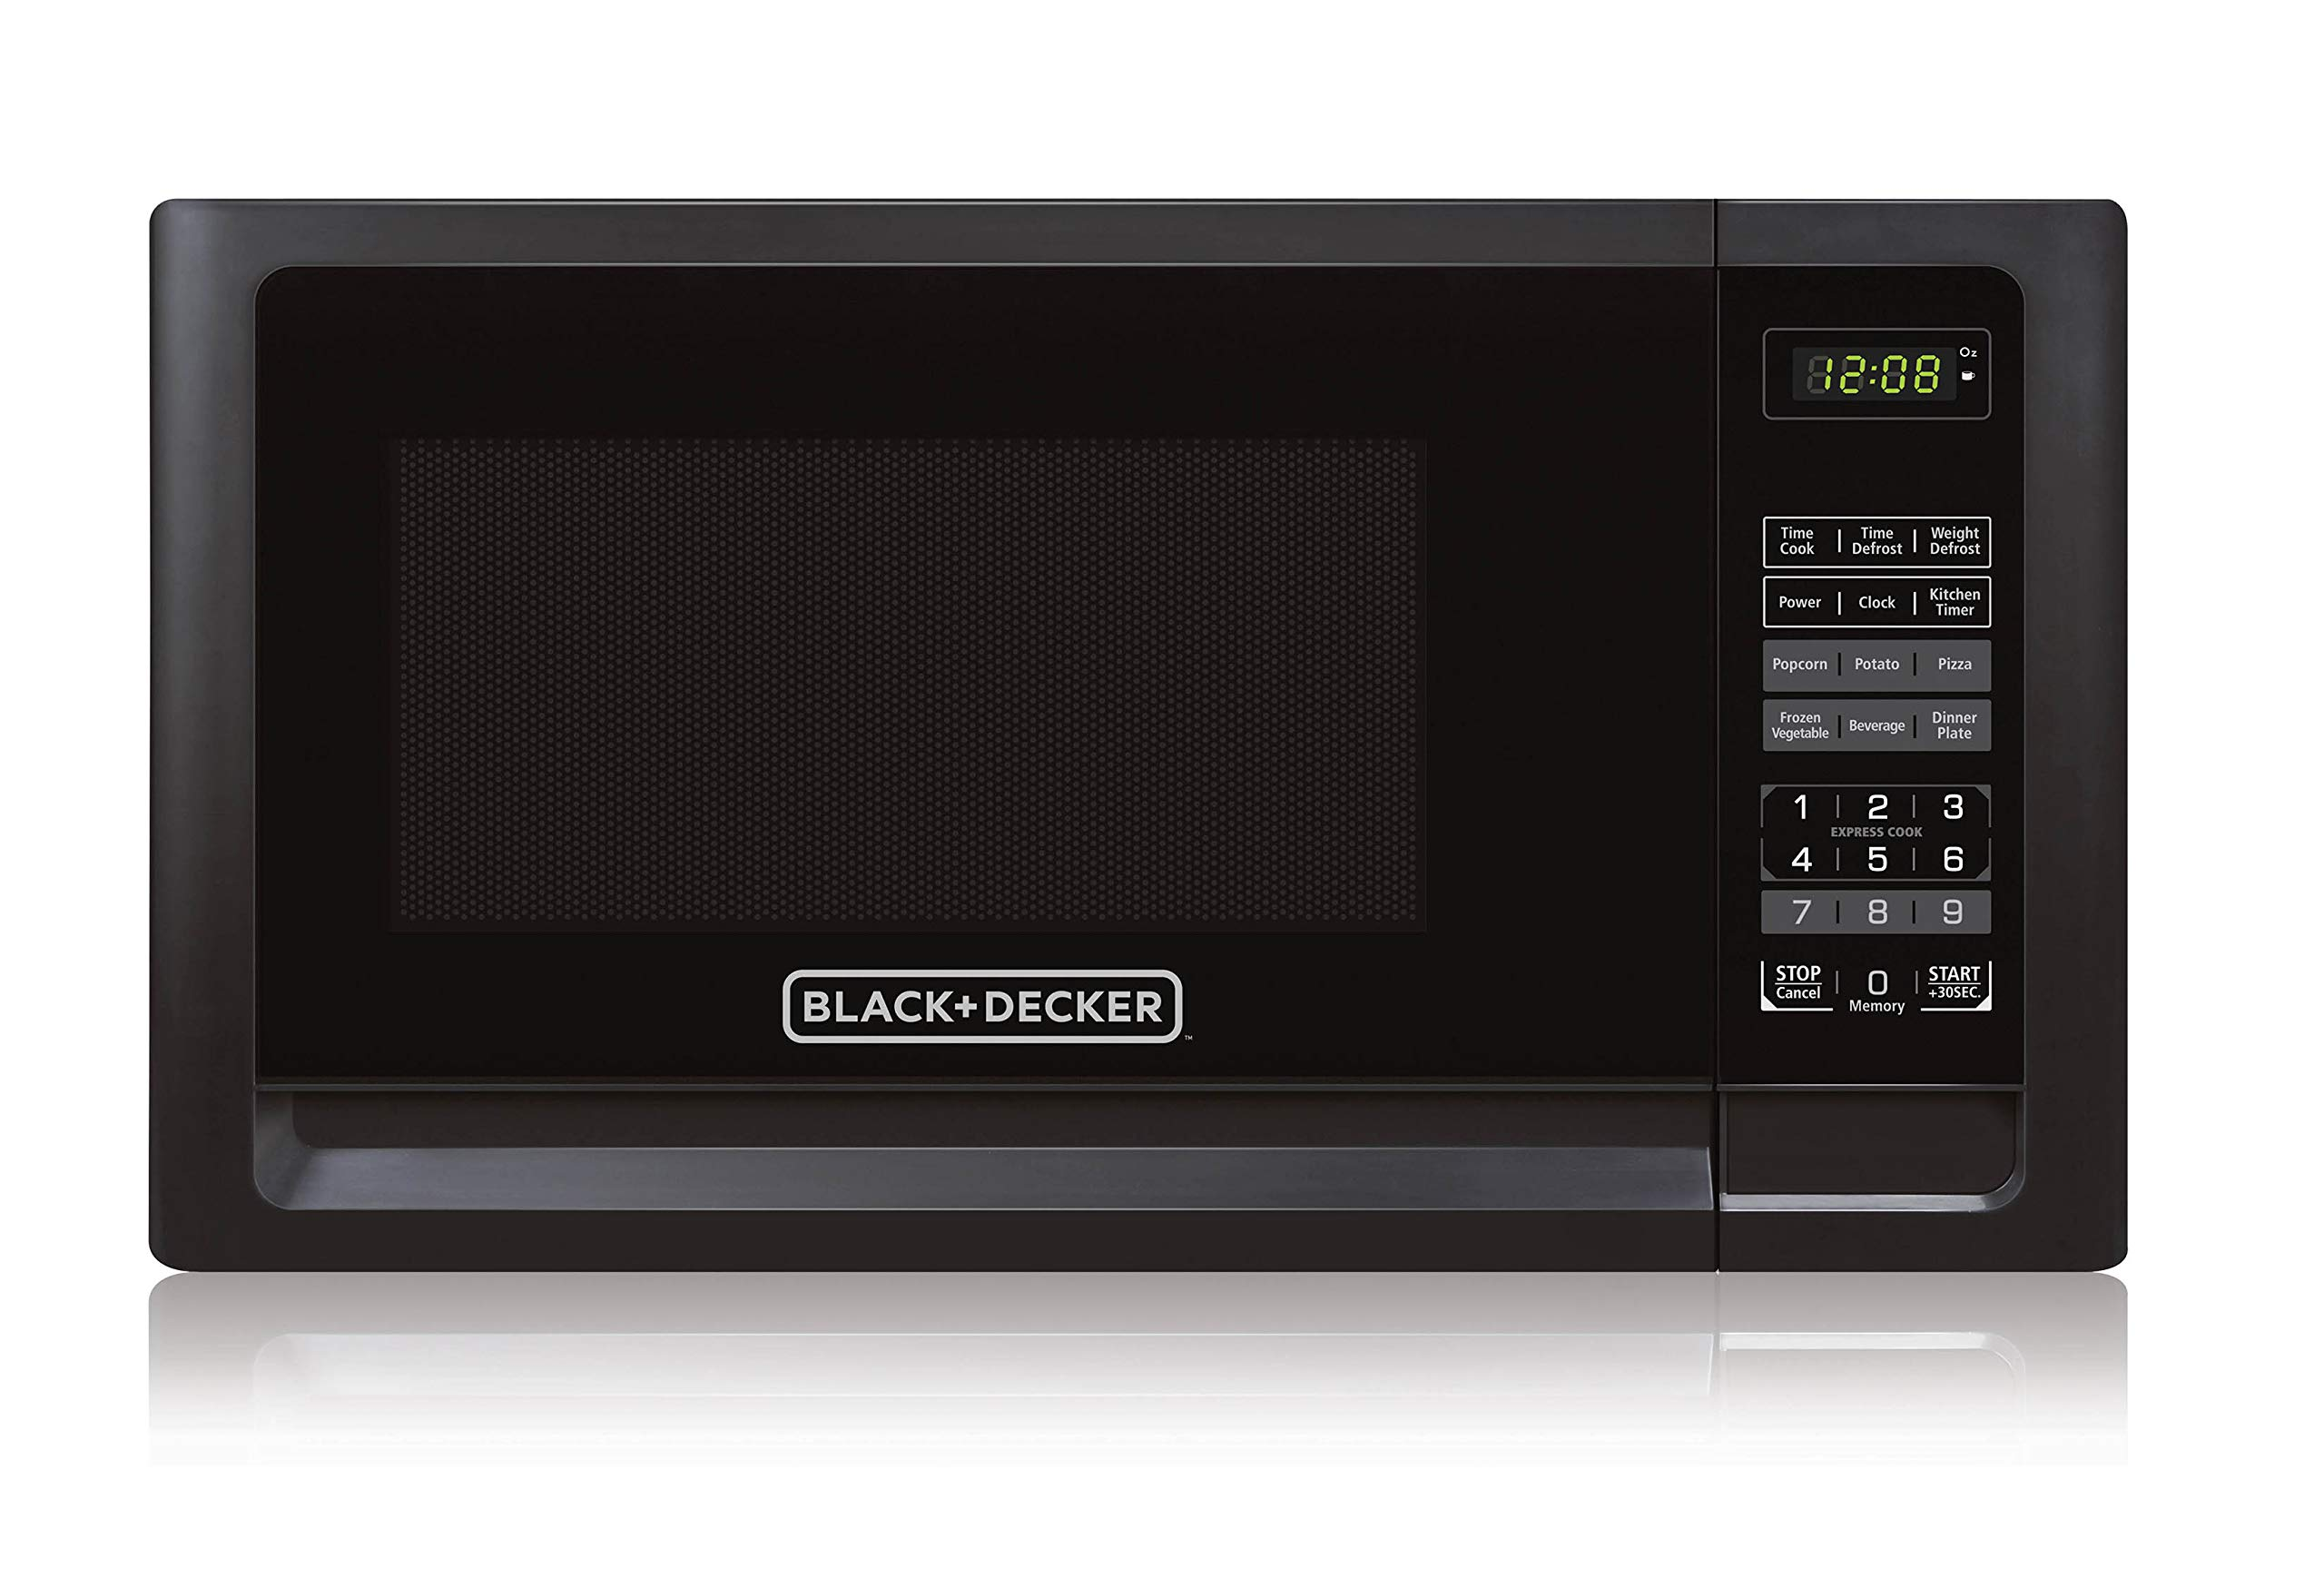 Black+Decker EM925AFO-P2 0.9 Cu. Ft. Digital Microwave by BLACK+DECKER